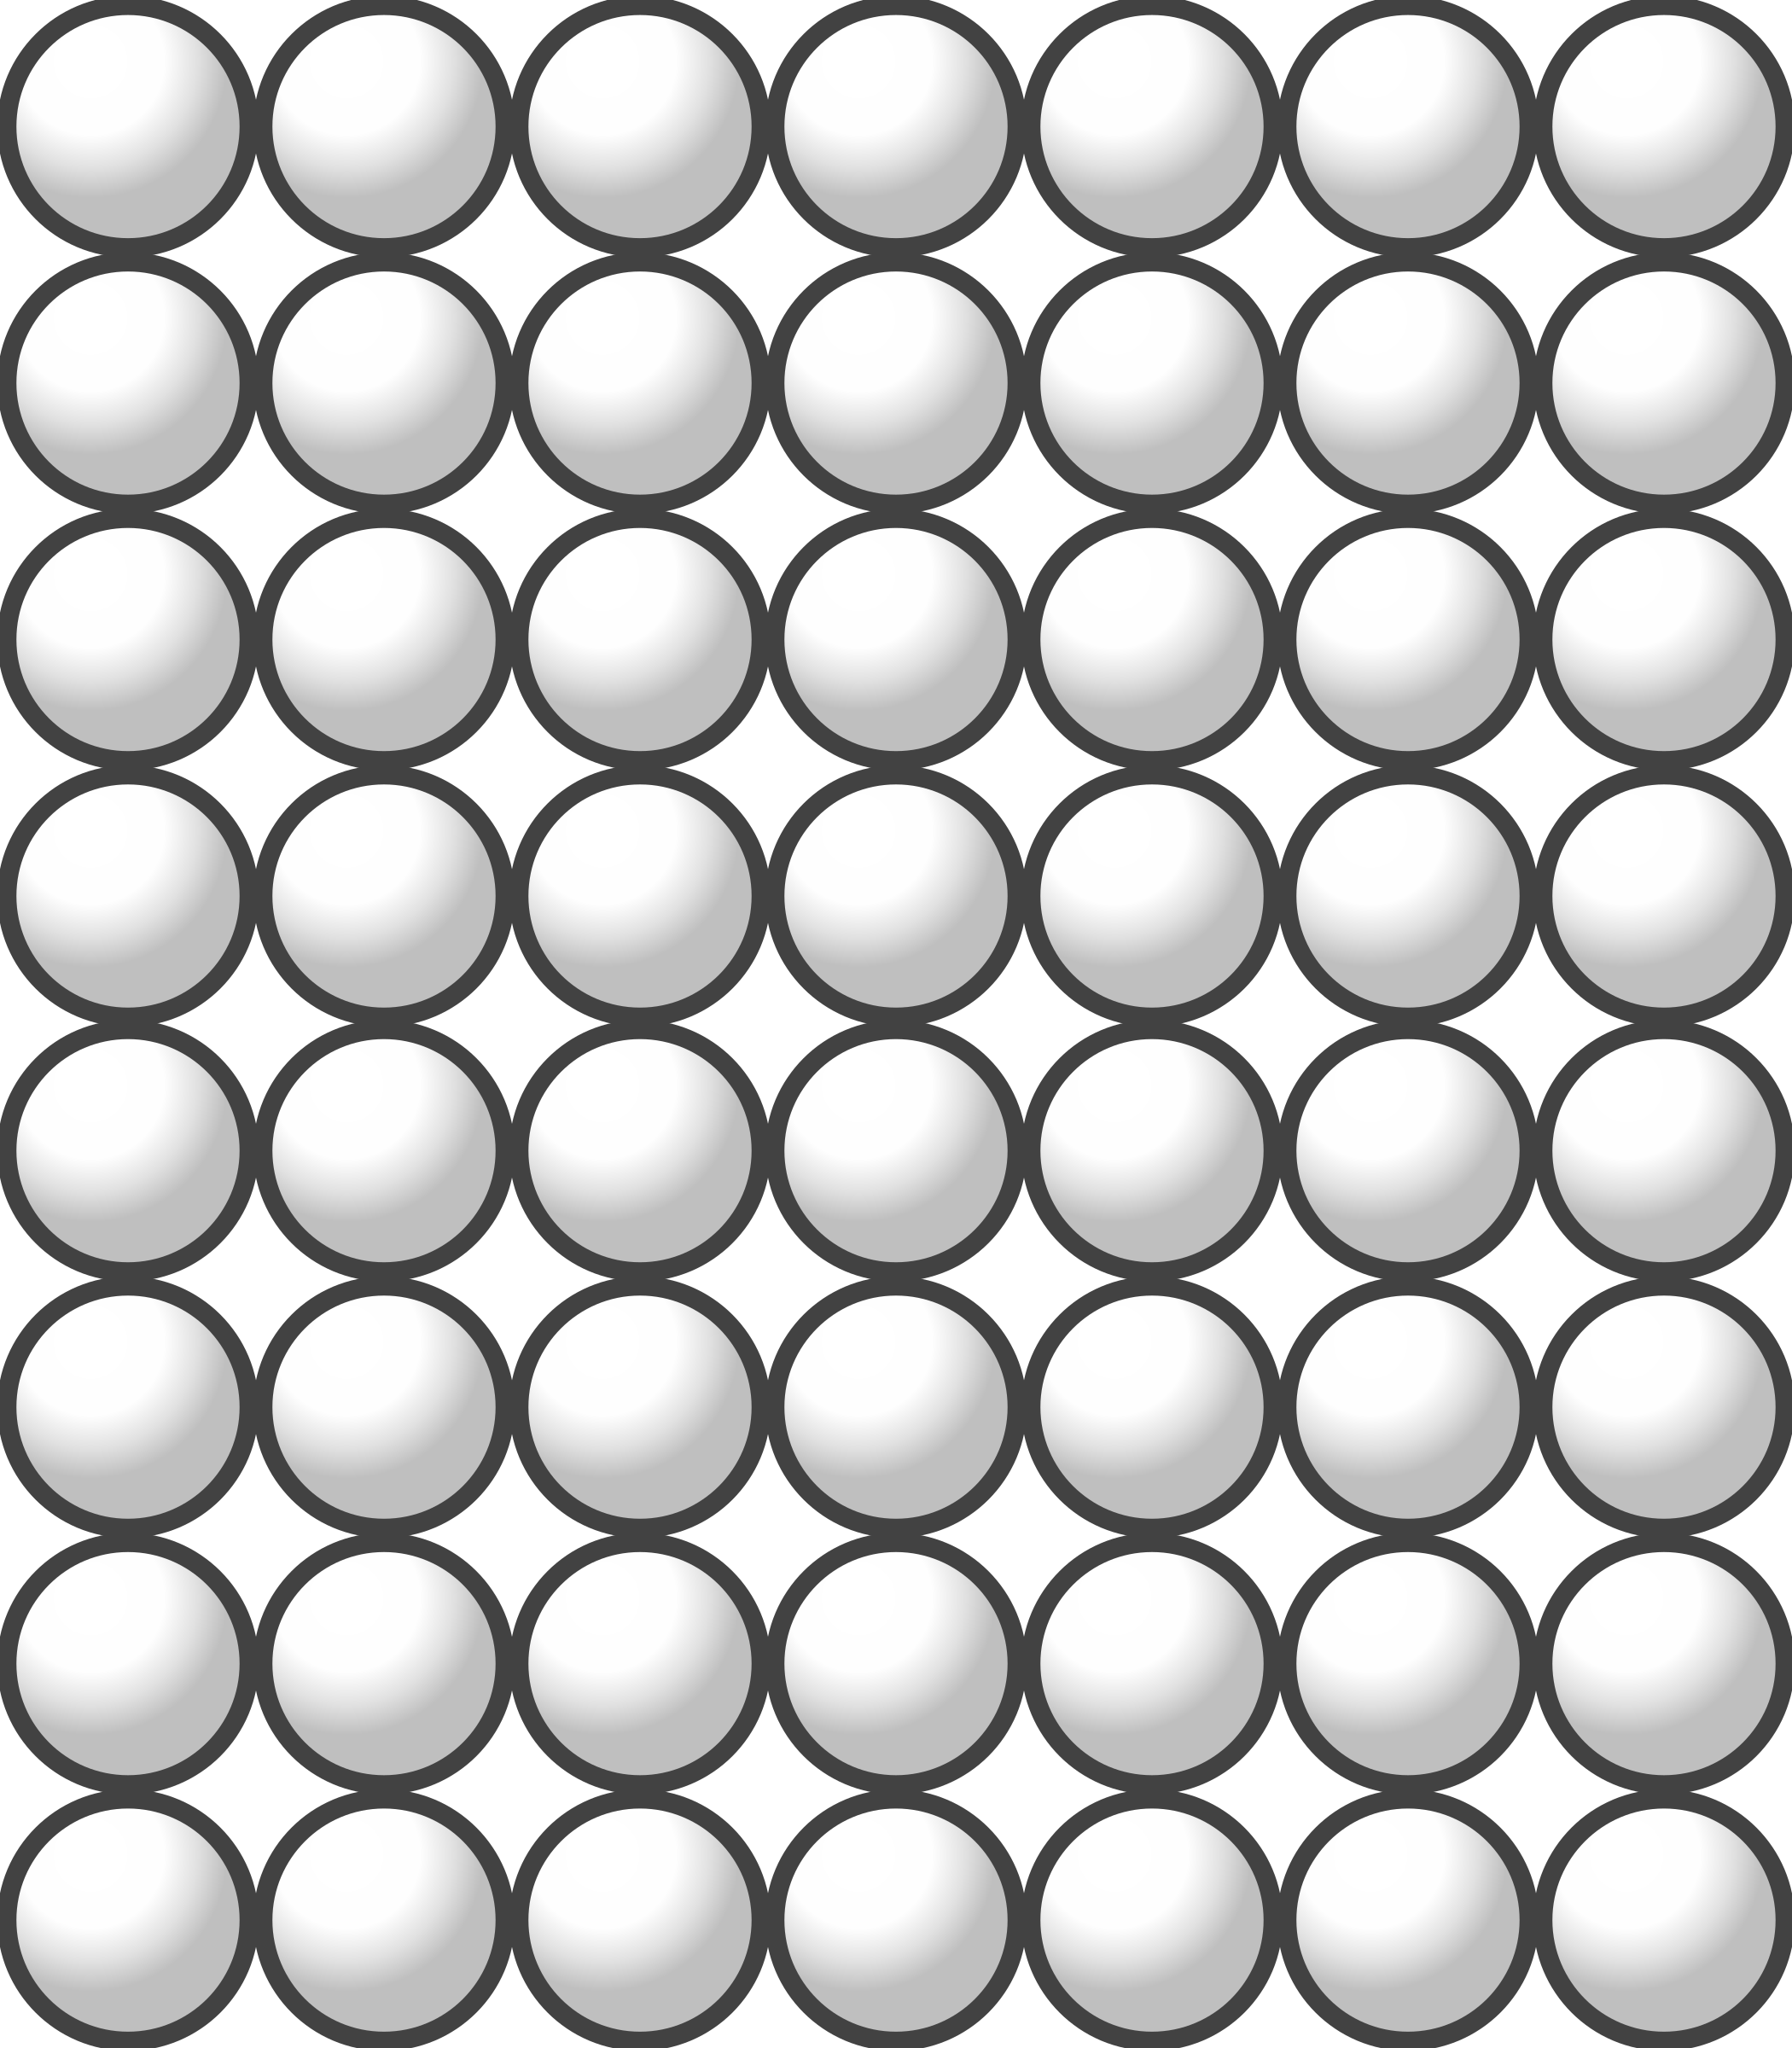 Multiplication clipart black and white. Beads quantitative picture for